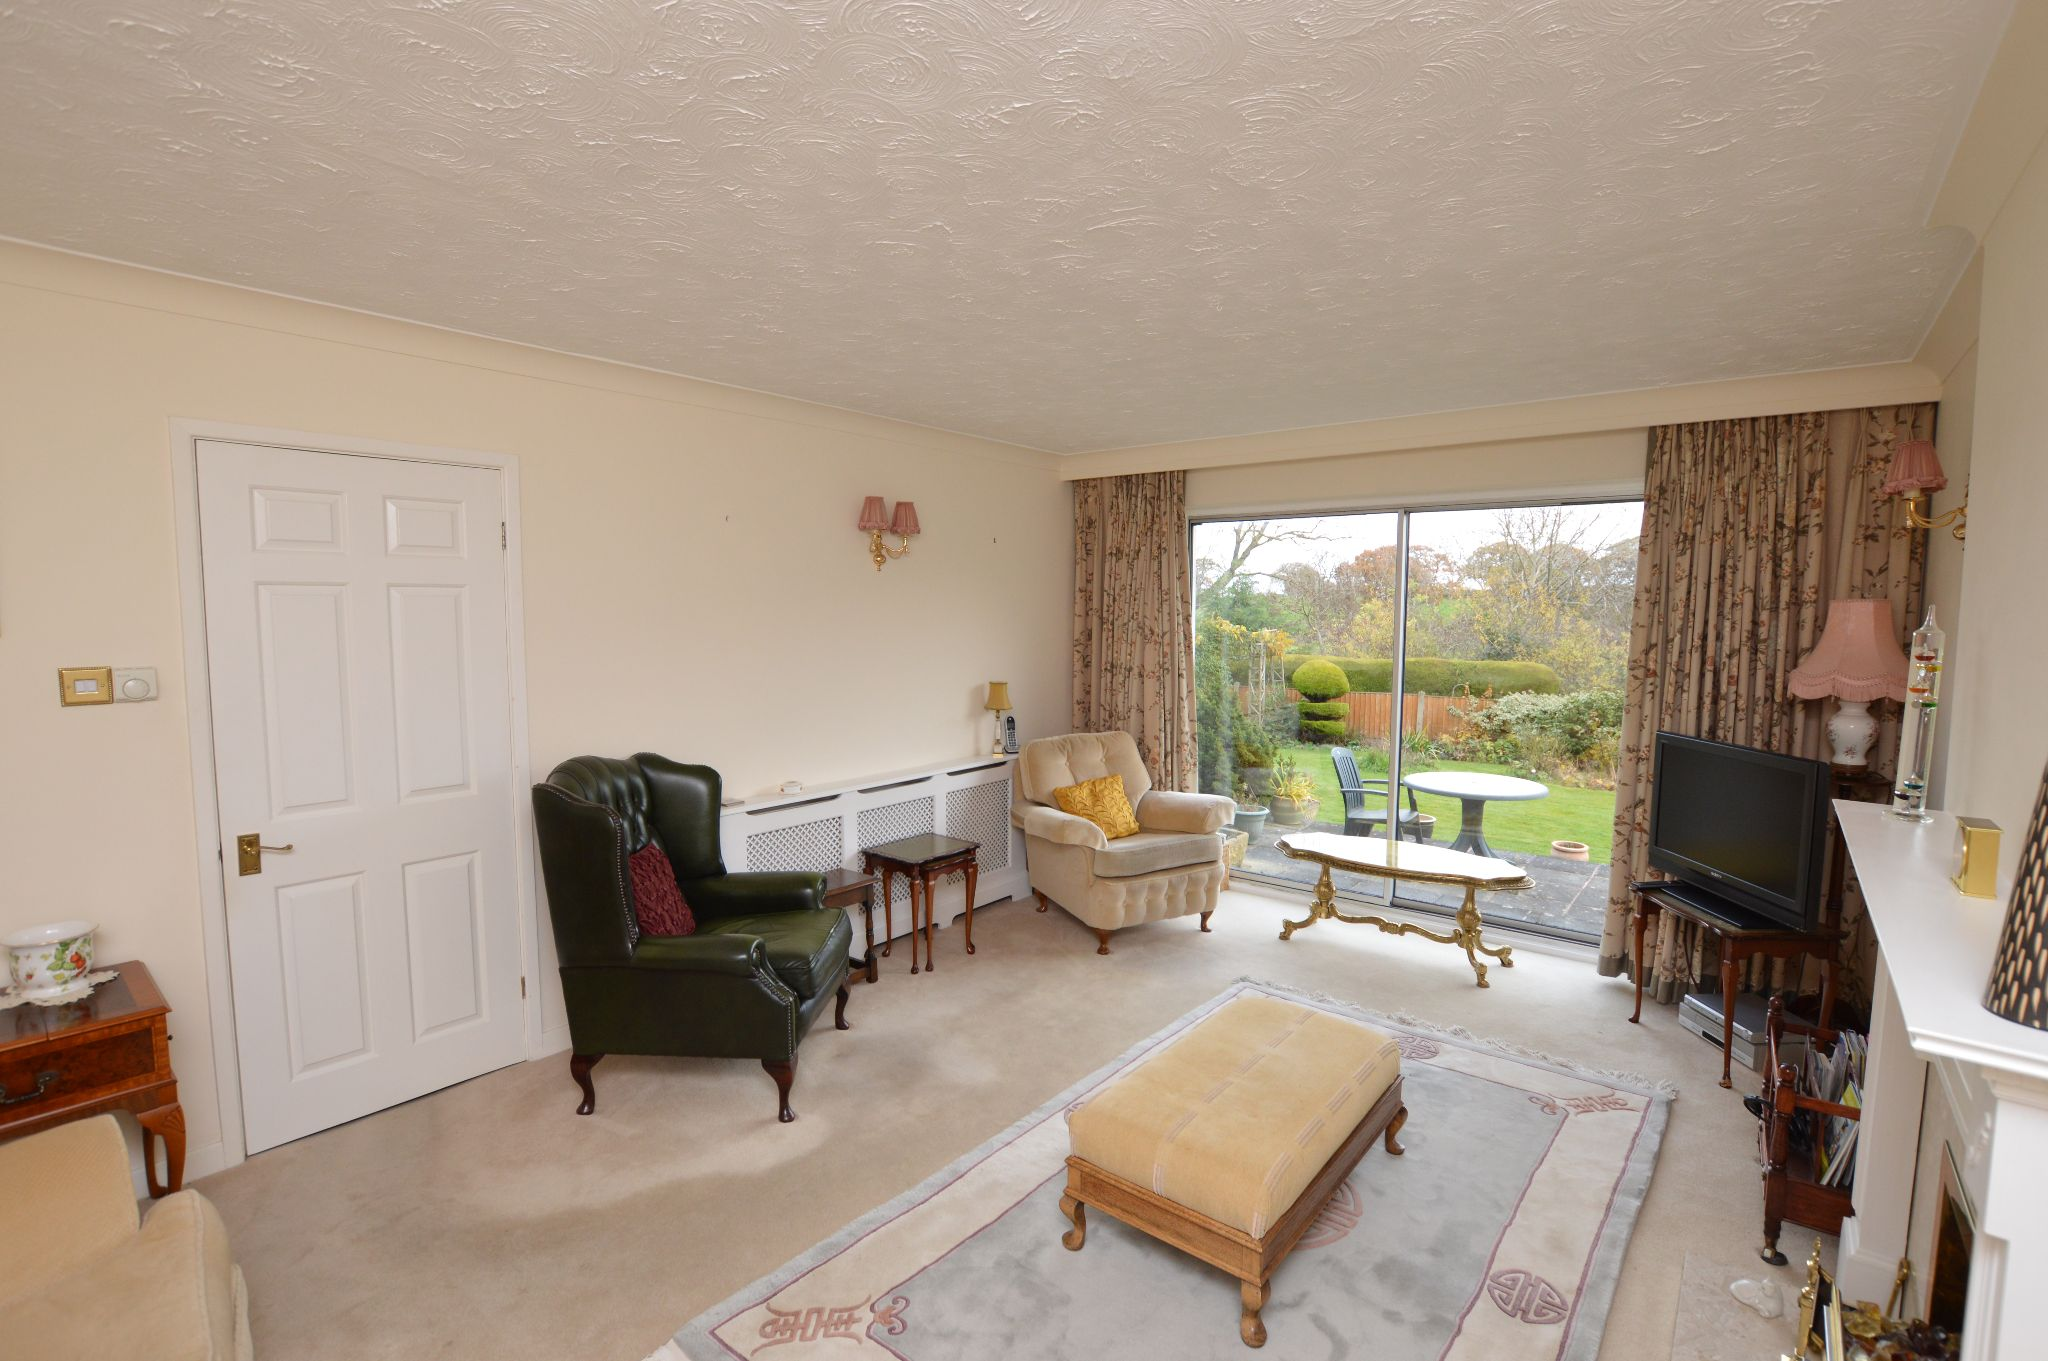 4 bedroom detached house For Sale in Abergele - Lounge View 2